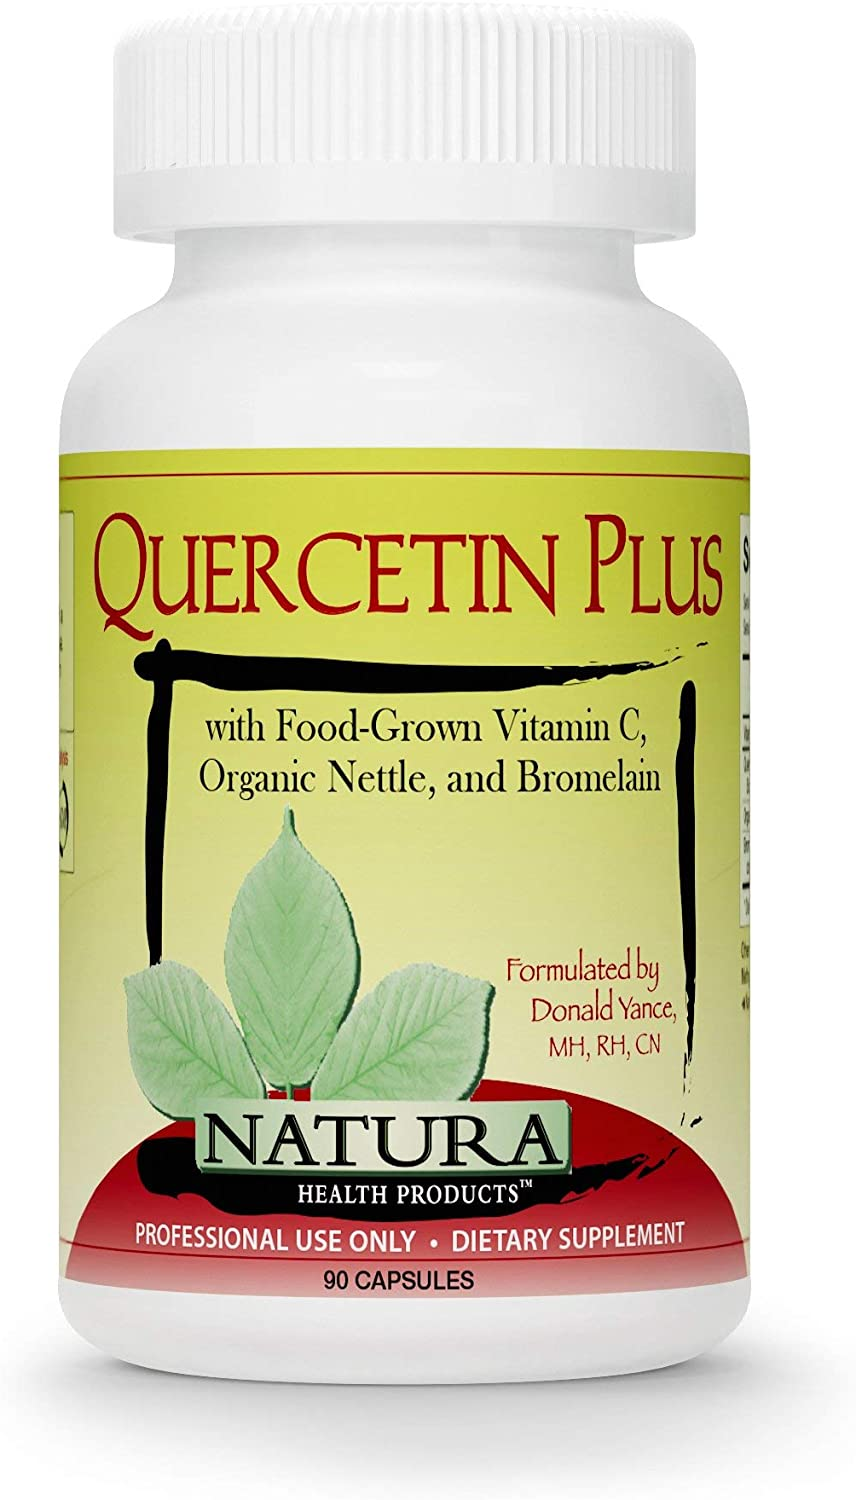 Natura Health Products - Quercetin Plus - Quercetin with Highly Bioavailable Food-Grown Vitamin C, Organic Nettle and Bromelain - 90 Capsules